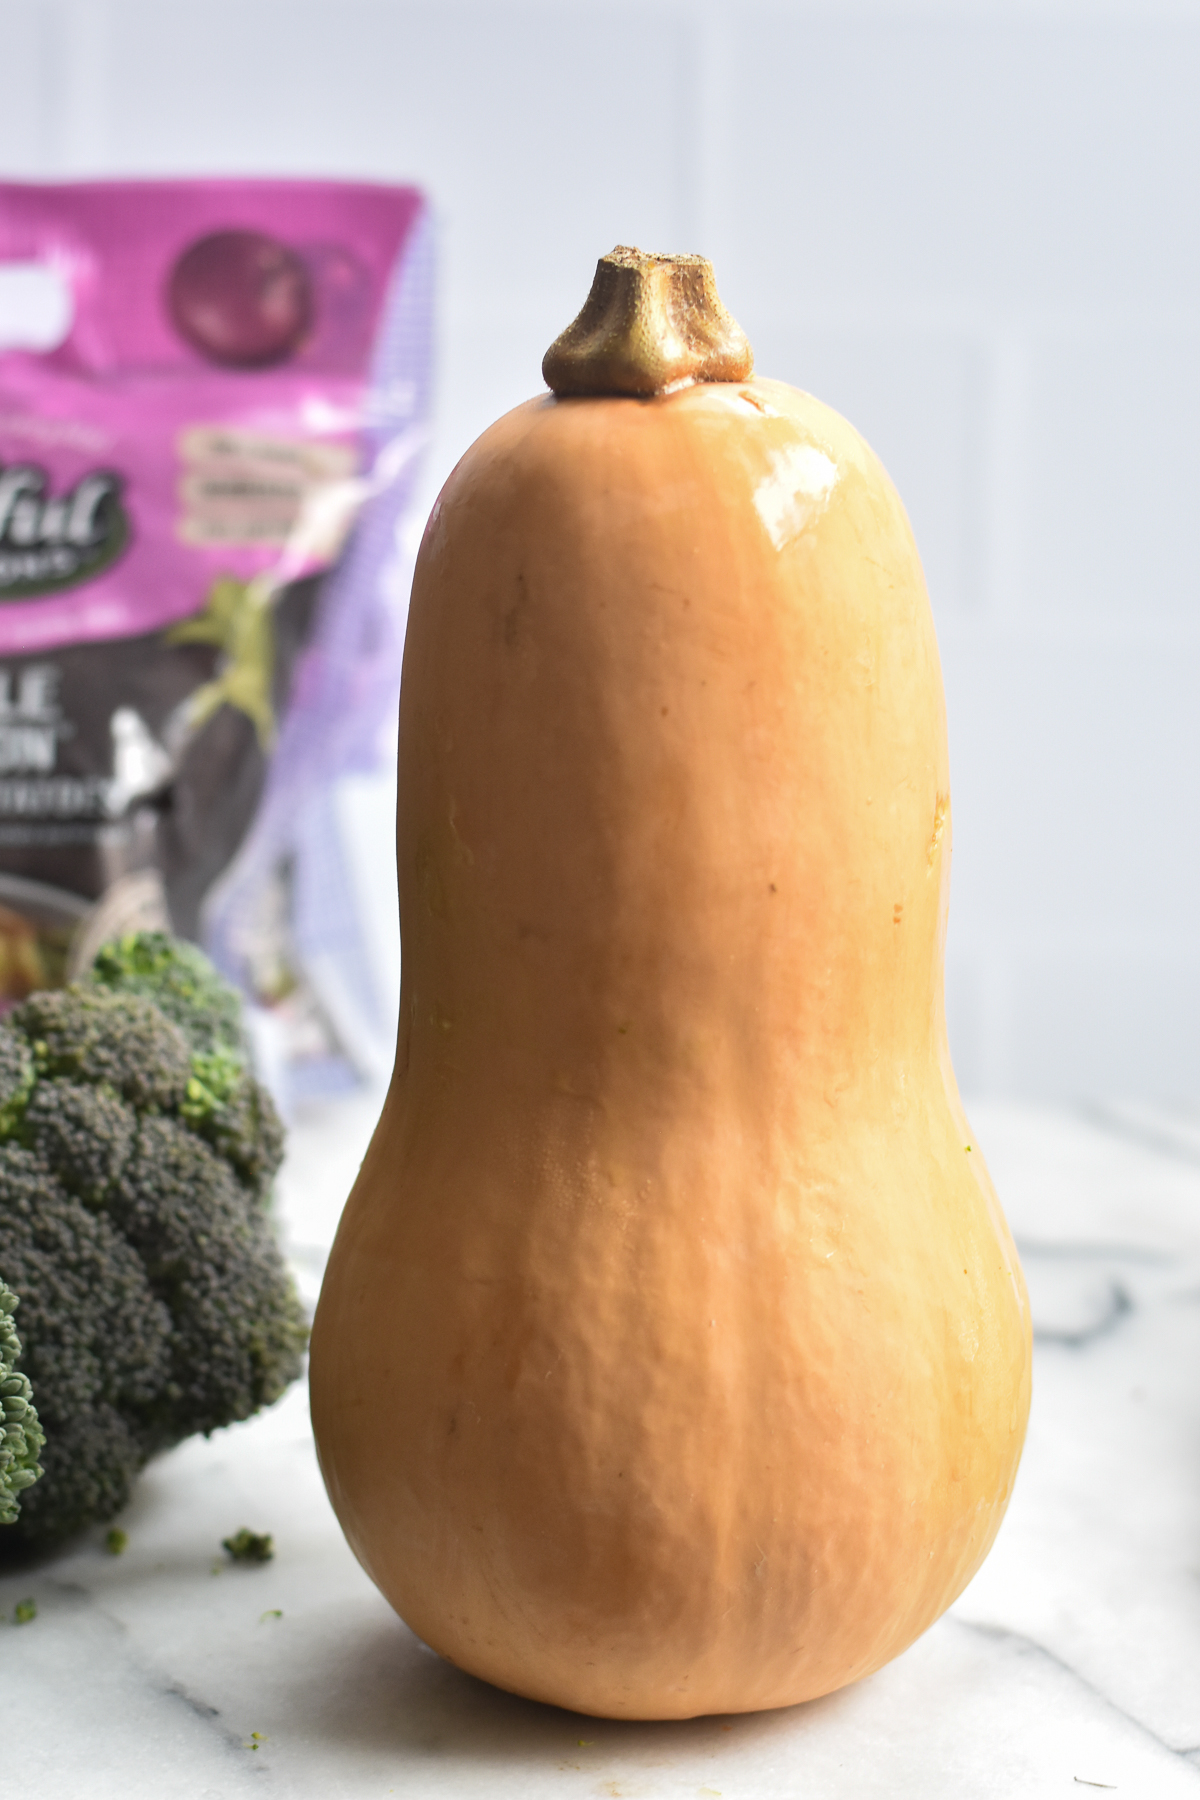 An honest review of Imperfect Foods. Is this service right for you? #Imperfectfoods #grocerydelivery #foods #prodce #fruits #health #vegetables